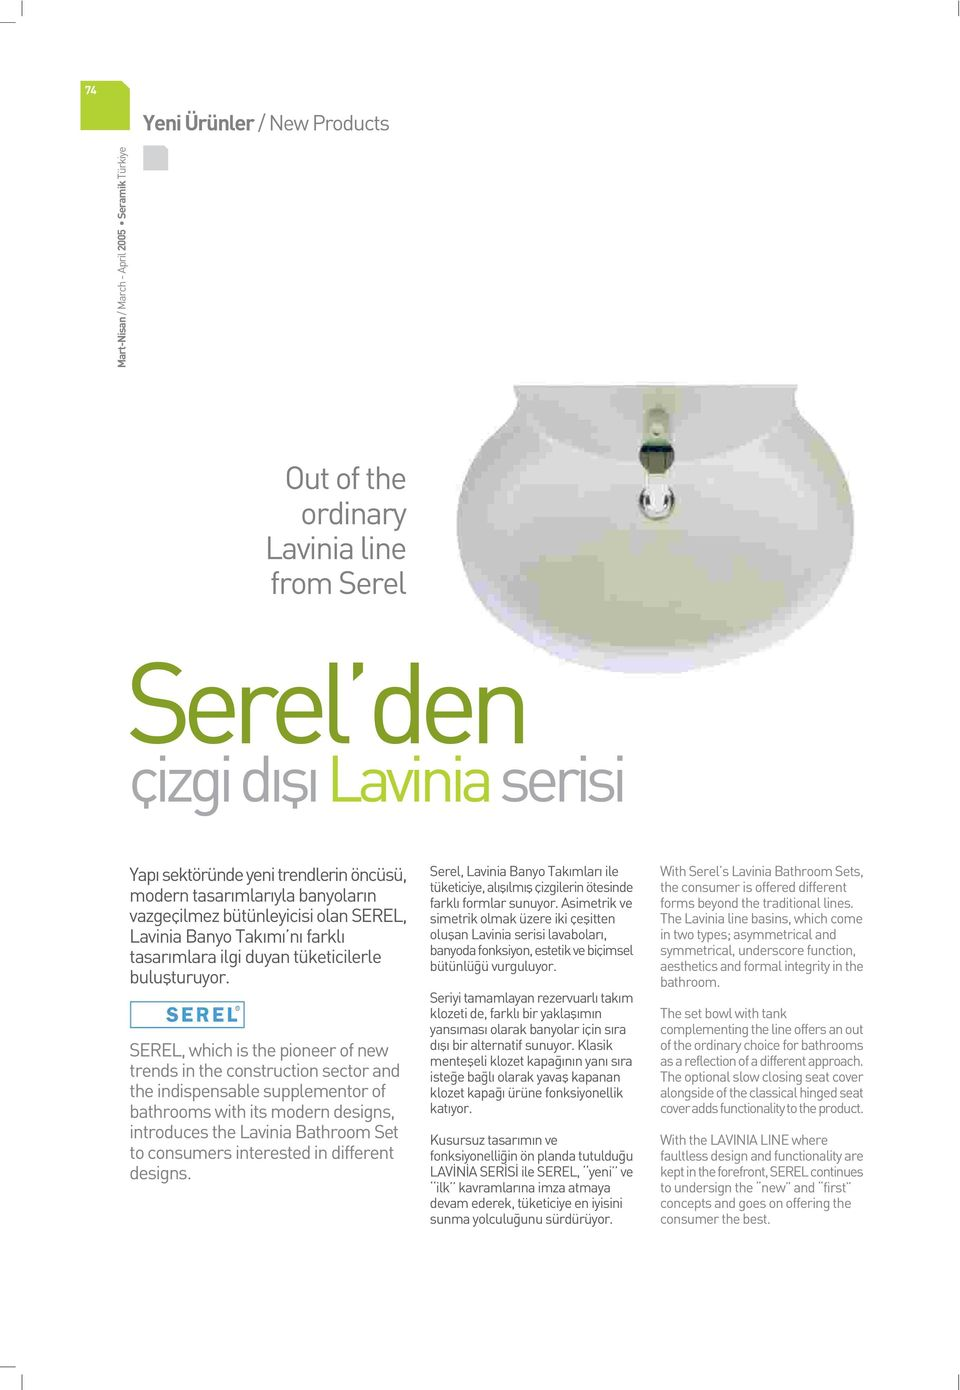 SEREL, which is the pioneer of new trends in the construction sector and the indispensable supplementor of bathrooms with its modern designs, introduces the Lavinia Bathroom Set to consumers